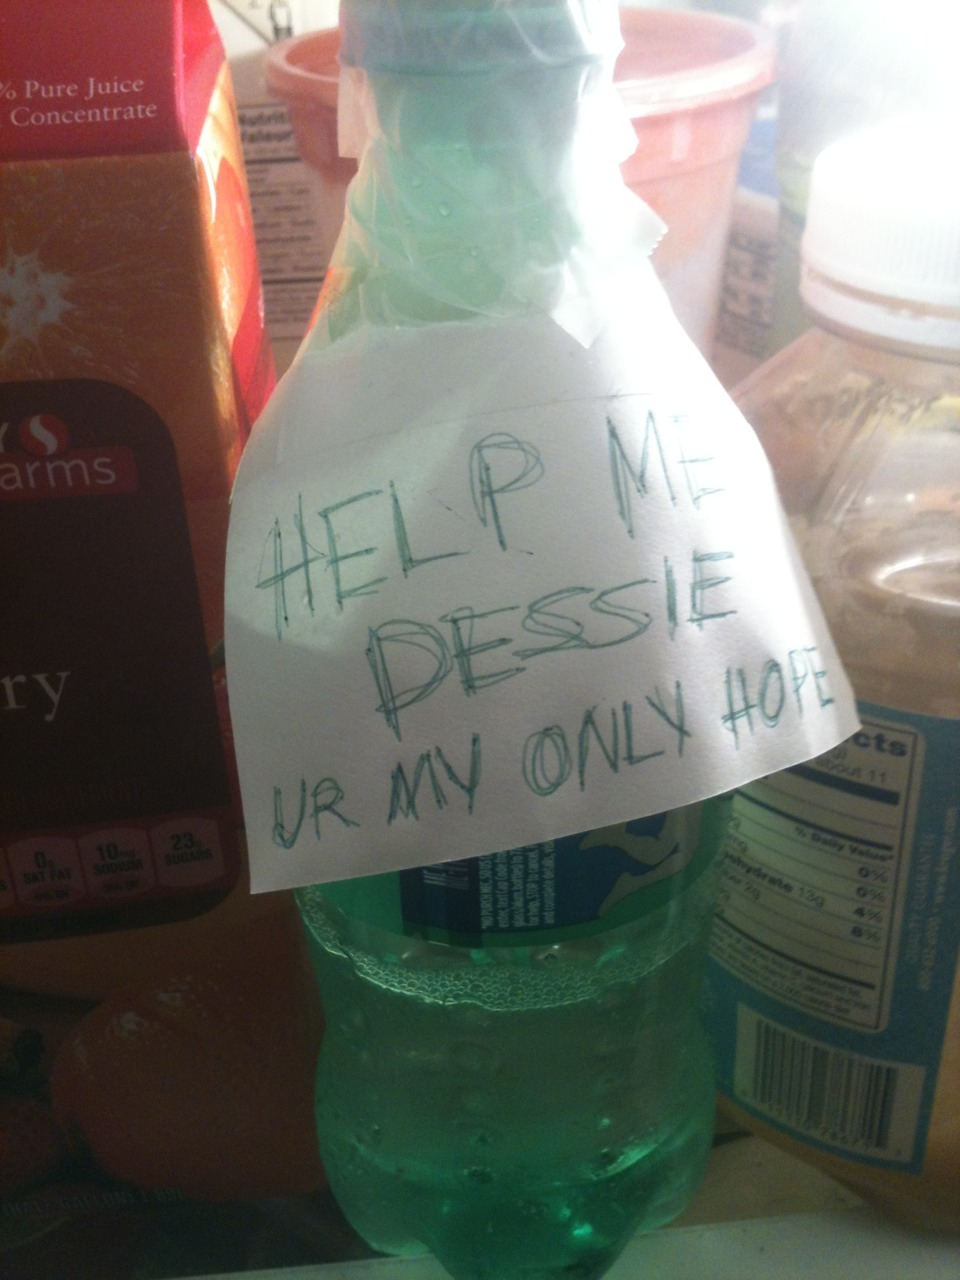 someone left their sprite at my apartment